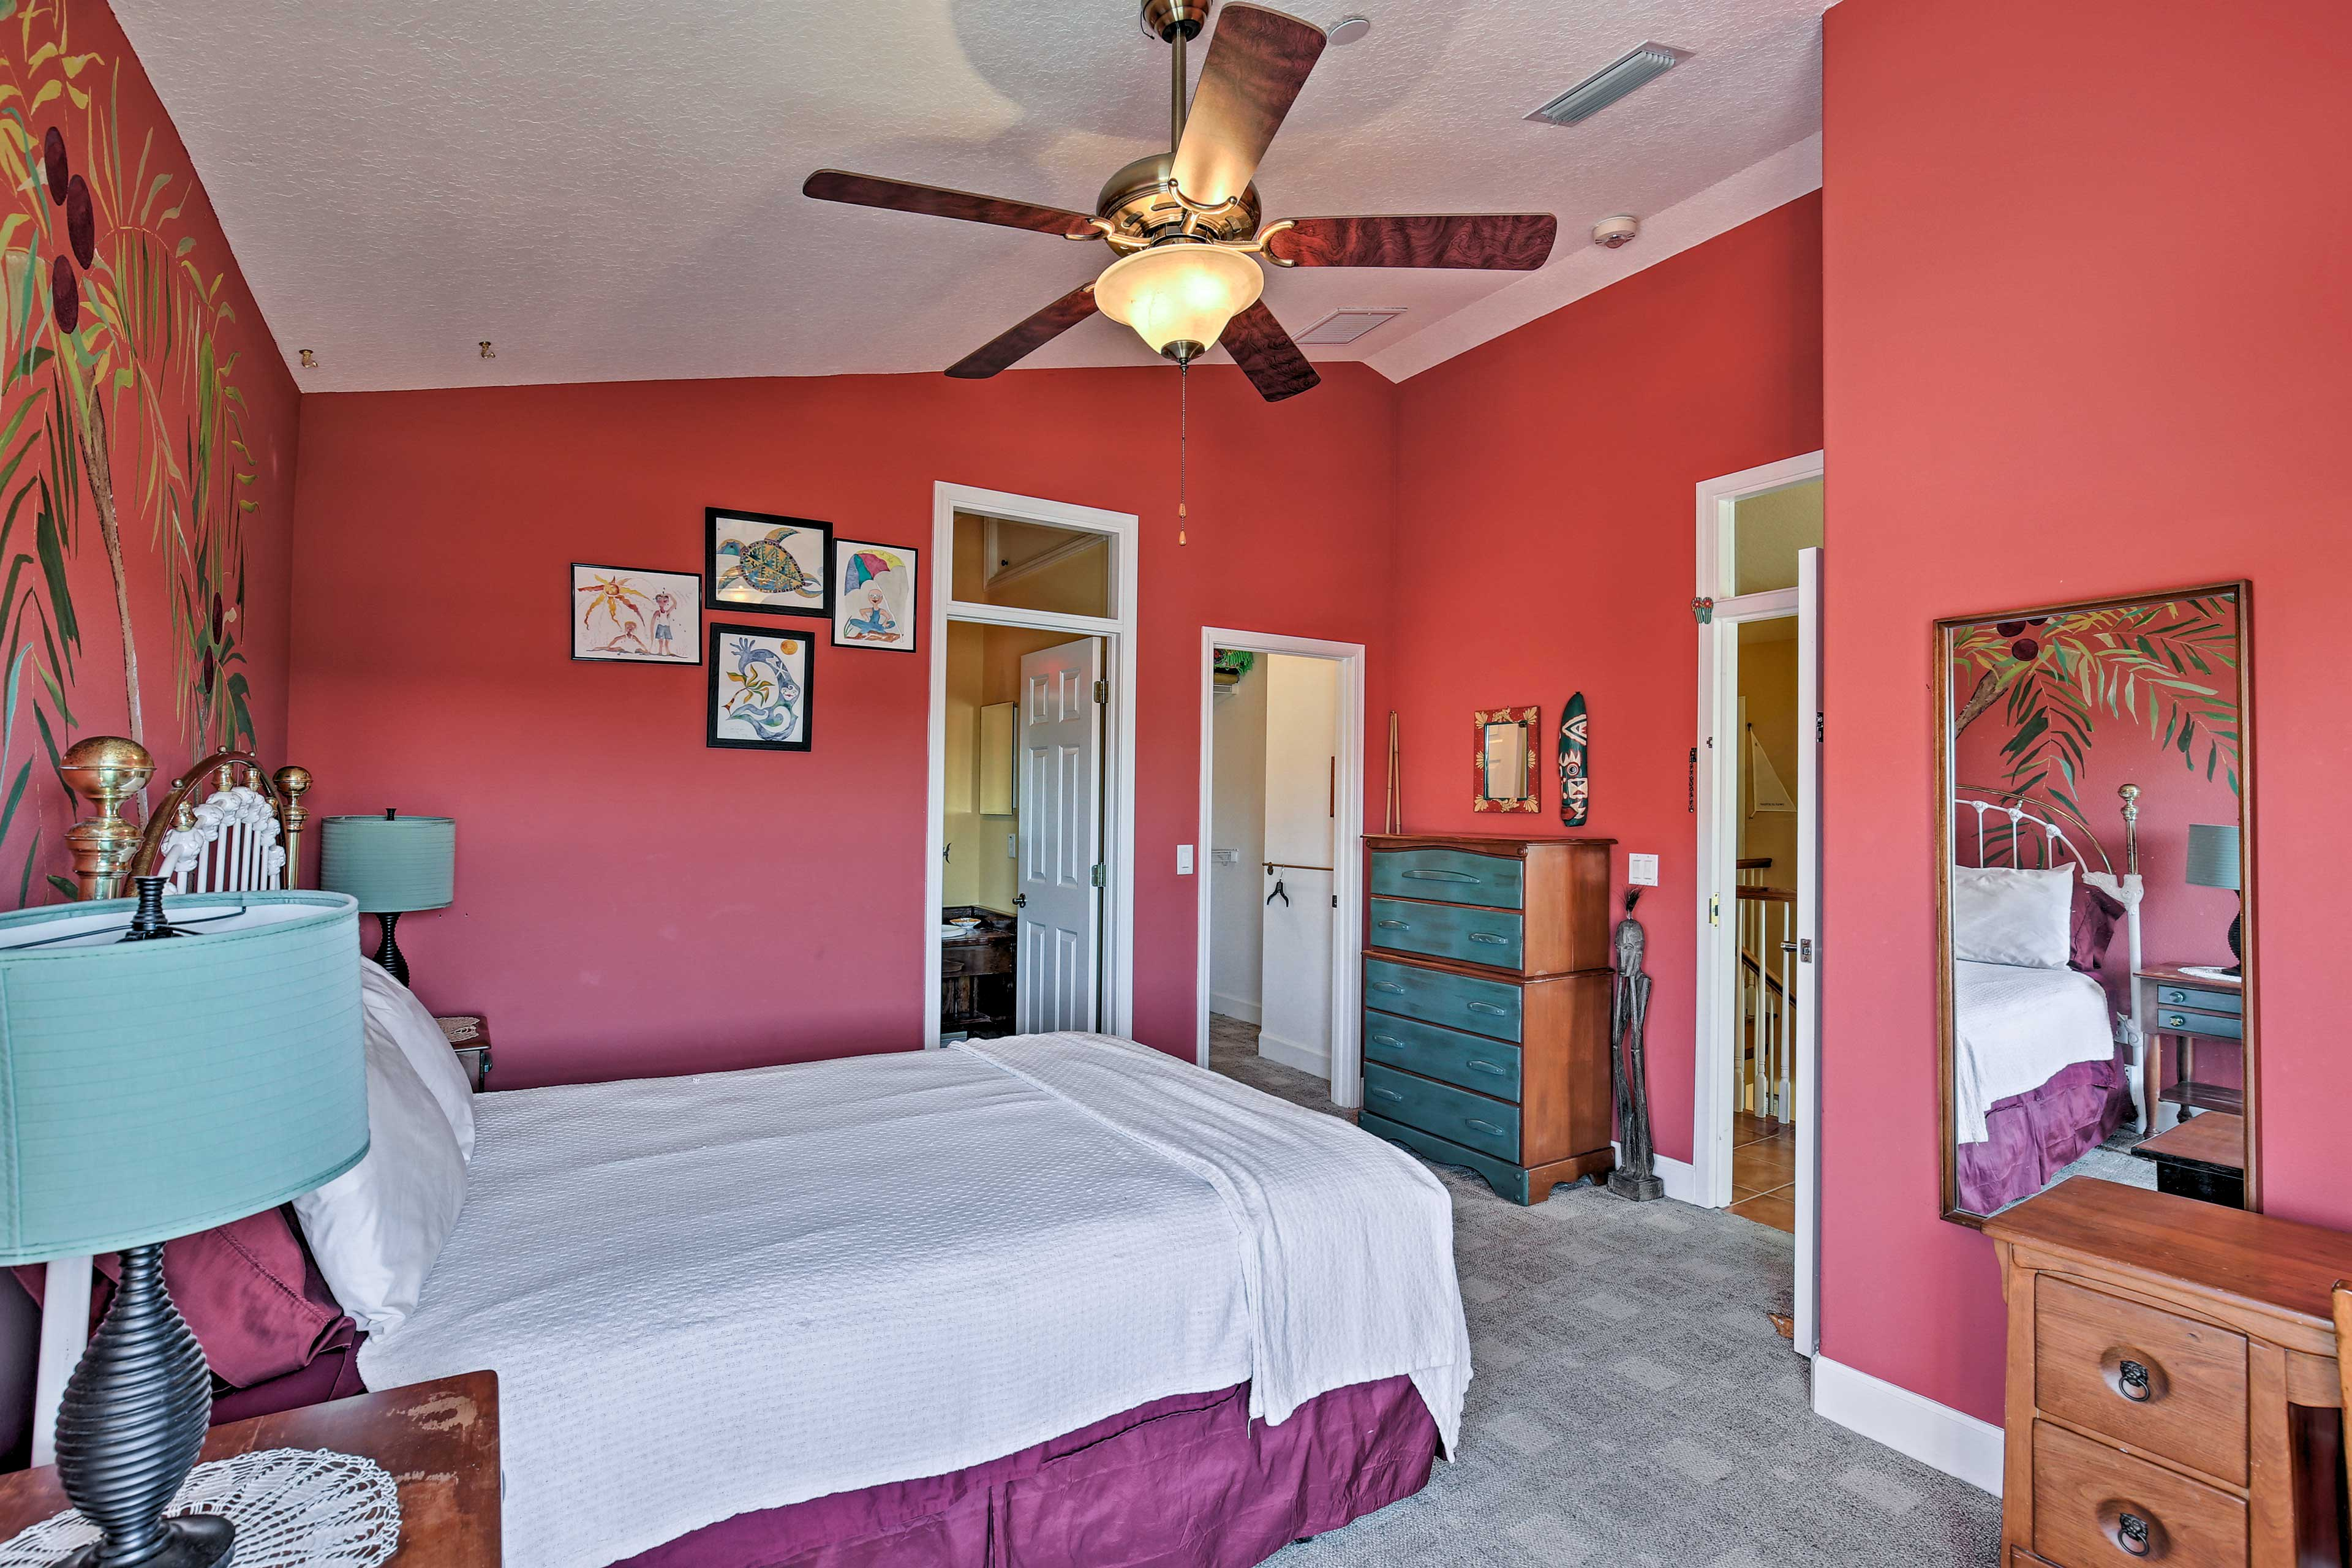 Each room features a flat-screen TV and en-suite bathroom.